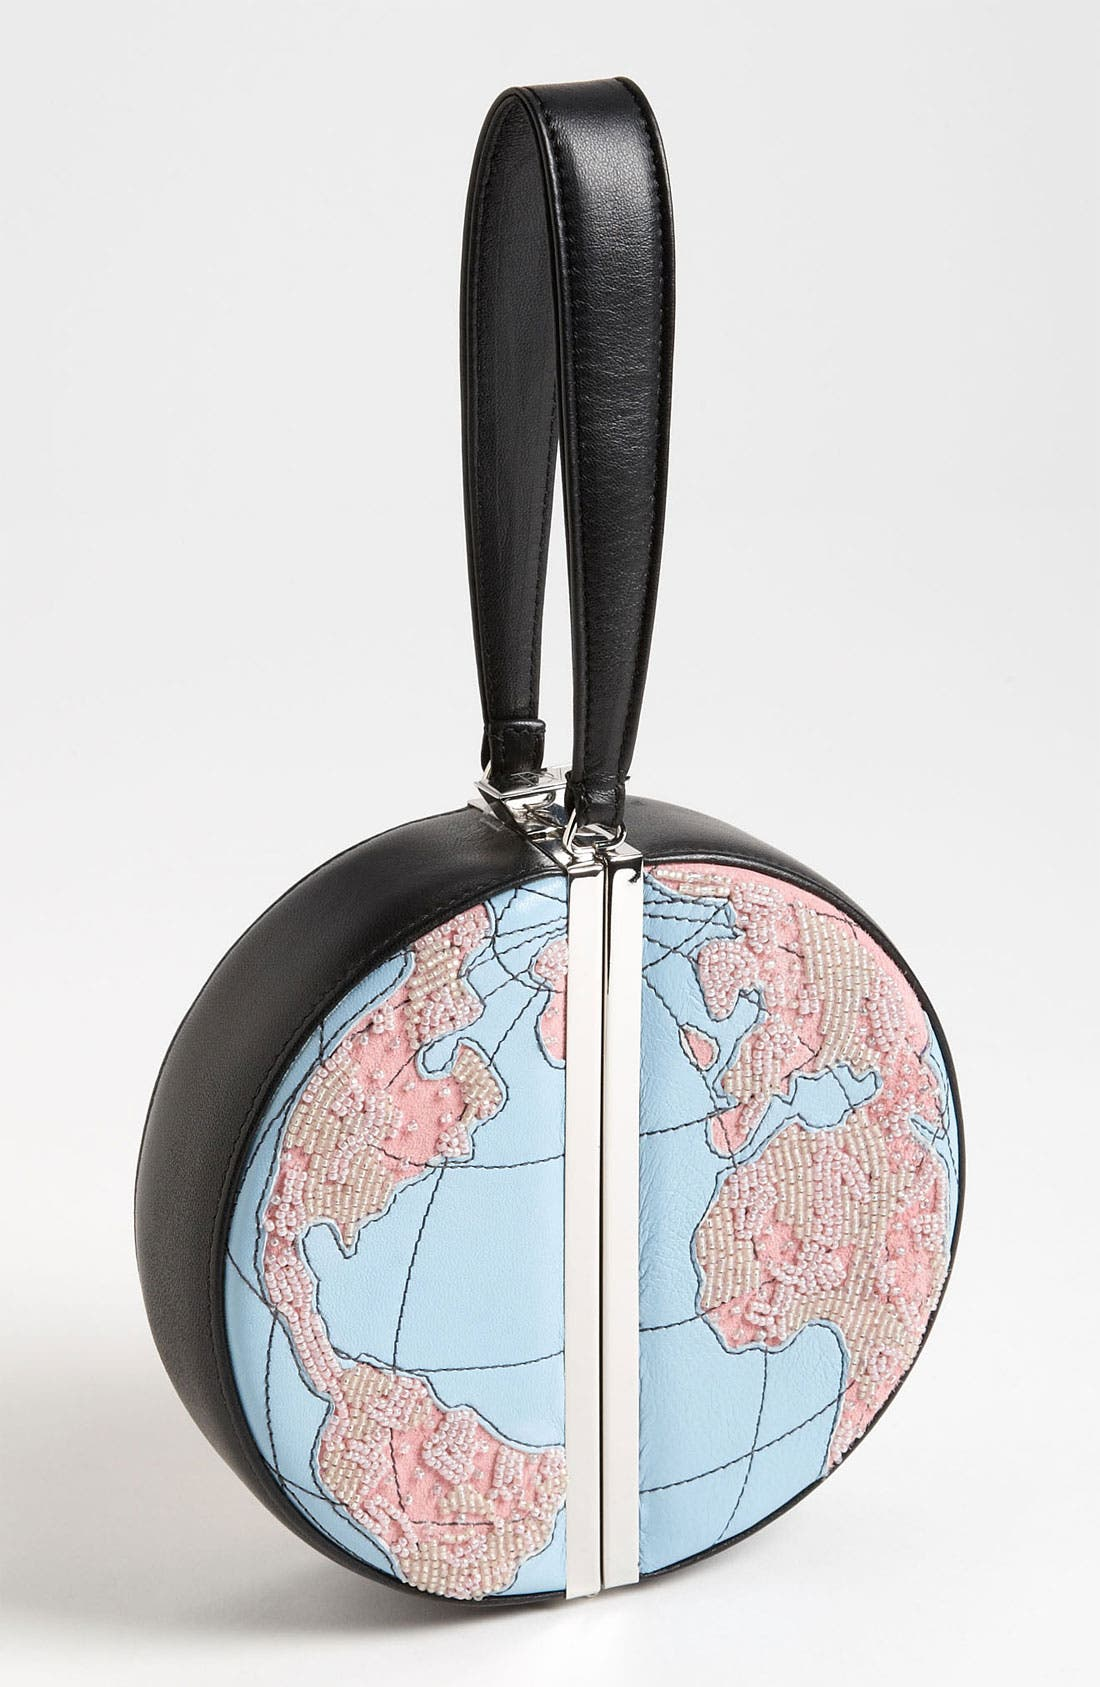 Alternate Image 1 Selected - Diane von Furstenberg 'Globe' Wristlet (Limited Edition)